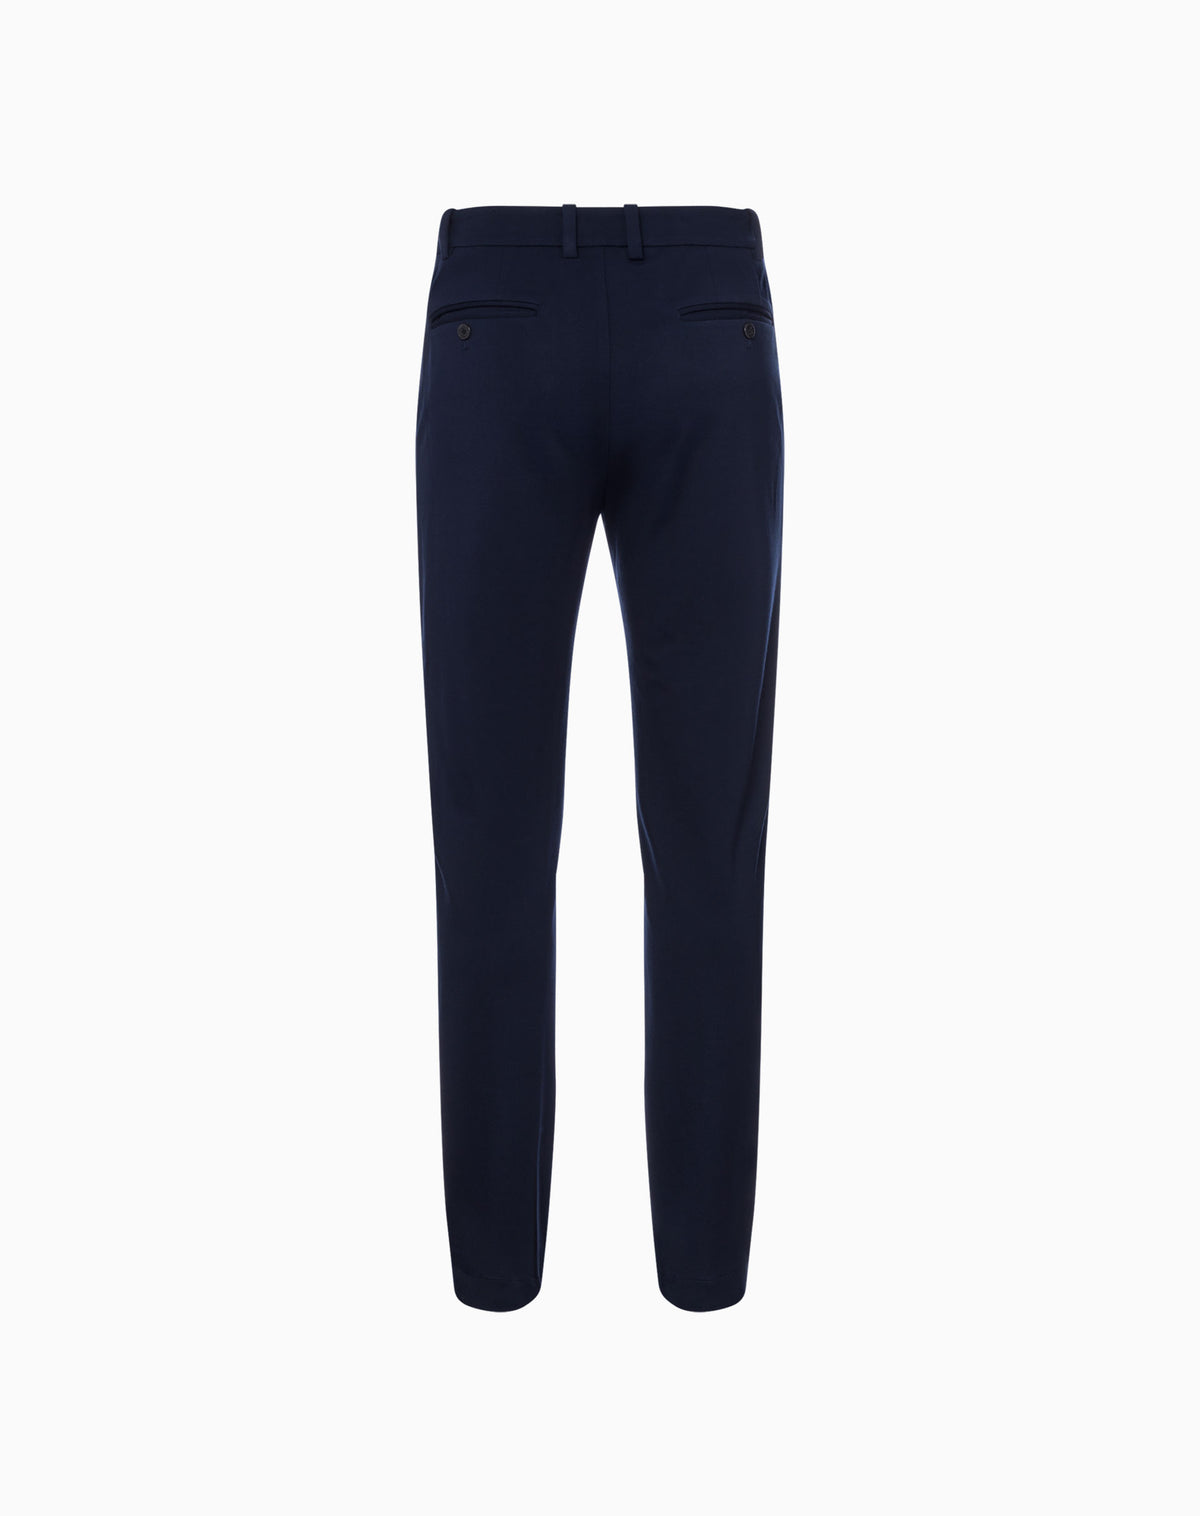 Knit Trousers in Navy